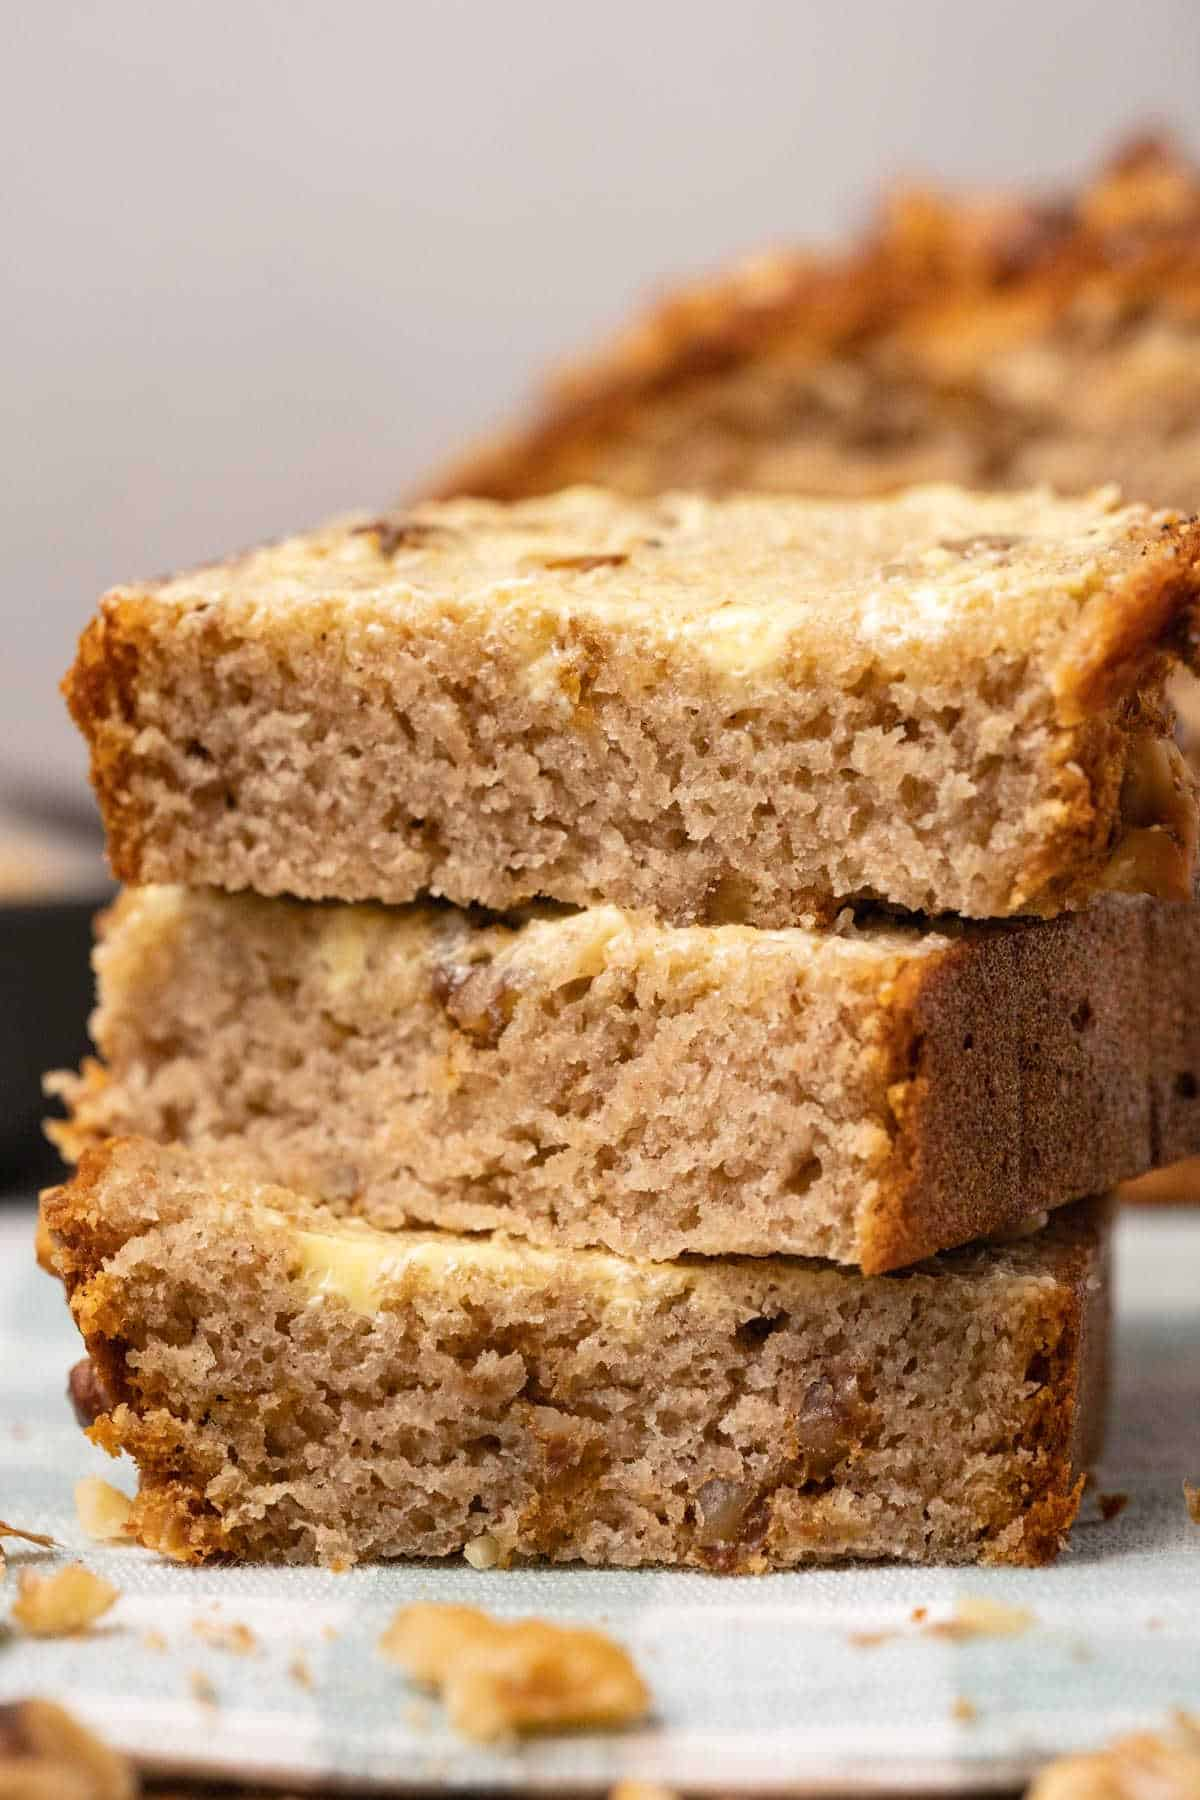 Buttered slices of banana bread in a stack.